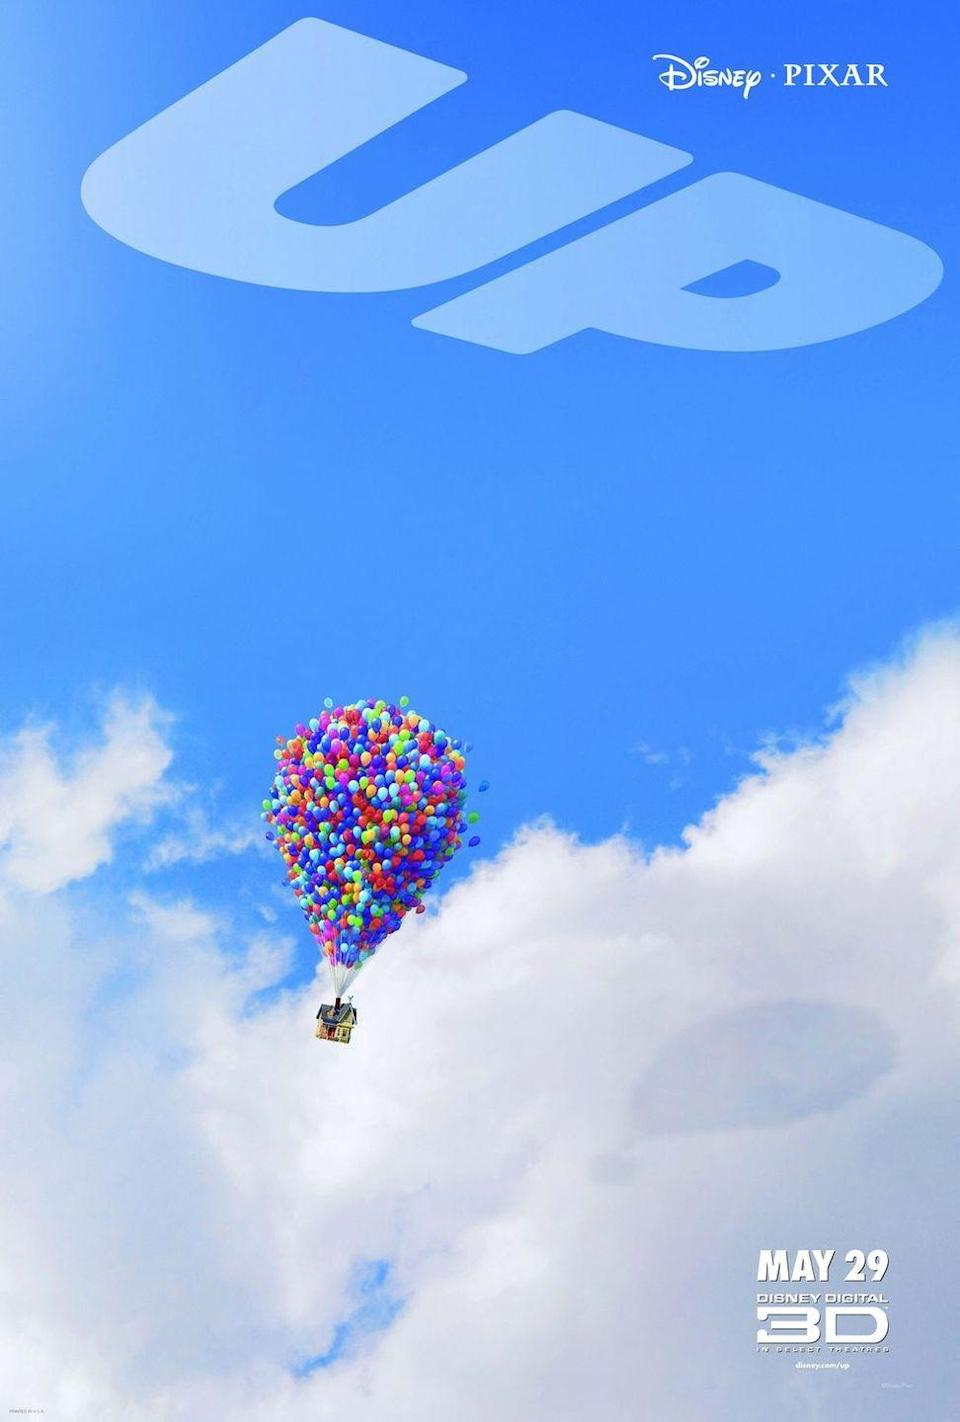 "<p>In signature Pixar form, audiences were weeping before the events really took off in <em>Up</em>. In the opening sequence of the movie, we're treated to an expedited journey through the storybook romance shared between Carl and Ellie. And though Ellie exits the storyline abruptly, her presence is felt throughout the heartwarming adventure—all the way to Paradise Falls, where she always wanted to go. <a class=""link rapid-noclick-resp"" href=""https://www.amazon.com/Up-Ed-Asner/dp/B005ZMTXMY?tag=syn-yahoo-20&ascsubtag=%5Bartid%7C10056.g.6498%5Bsrc%7Cyahoo-us"" rel=""nofollow noopener"" target=""_blank"" data-ylk=""slk:Watch Now"">Watch Now</a></p>"